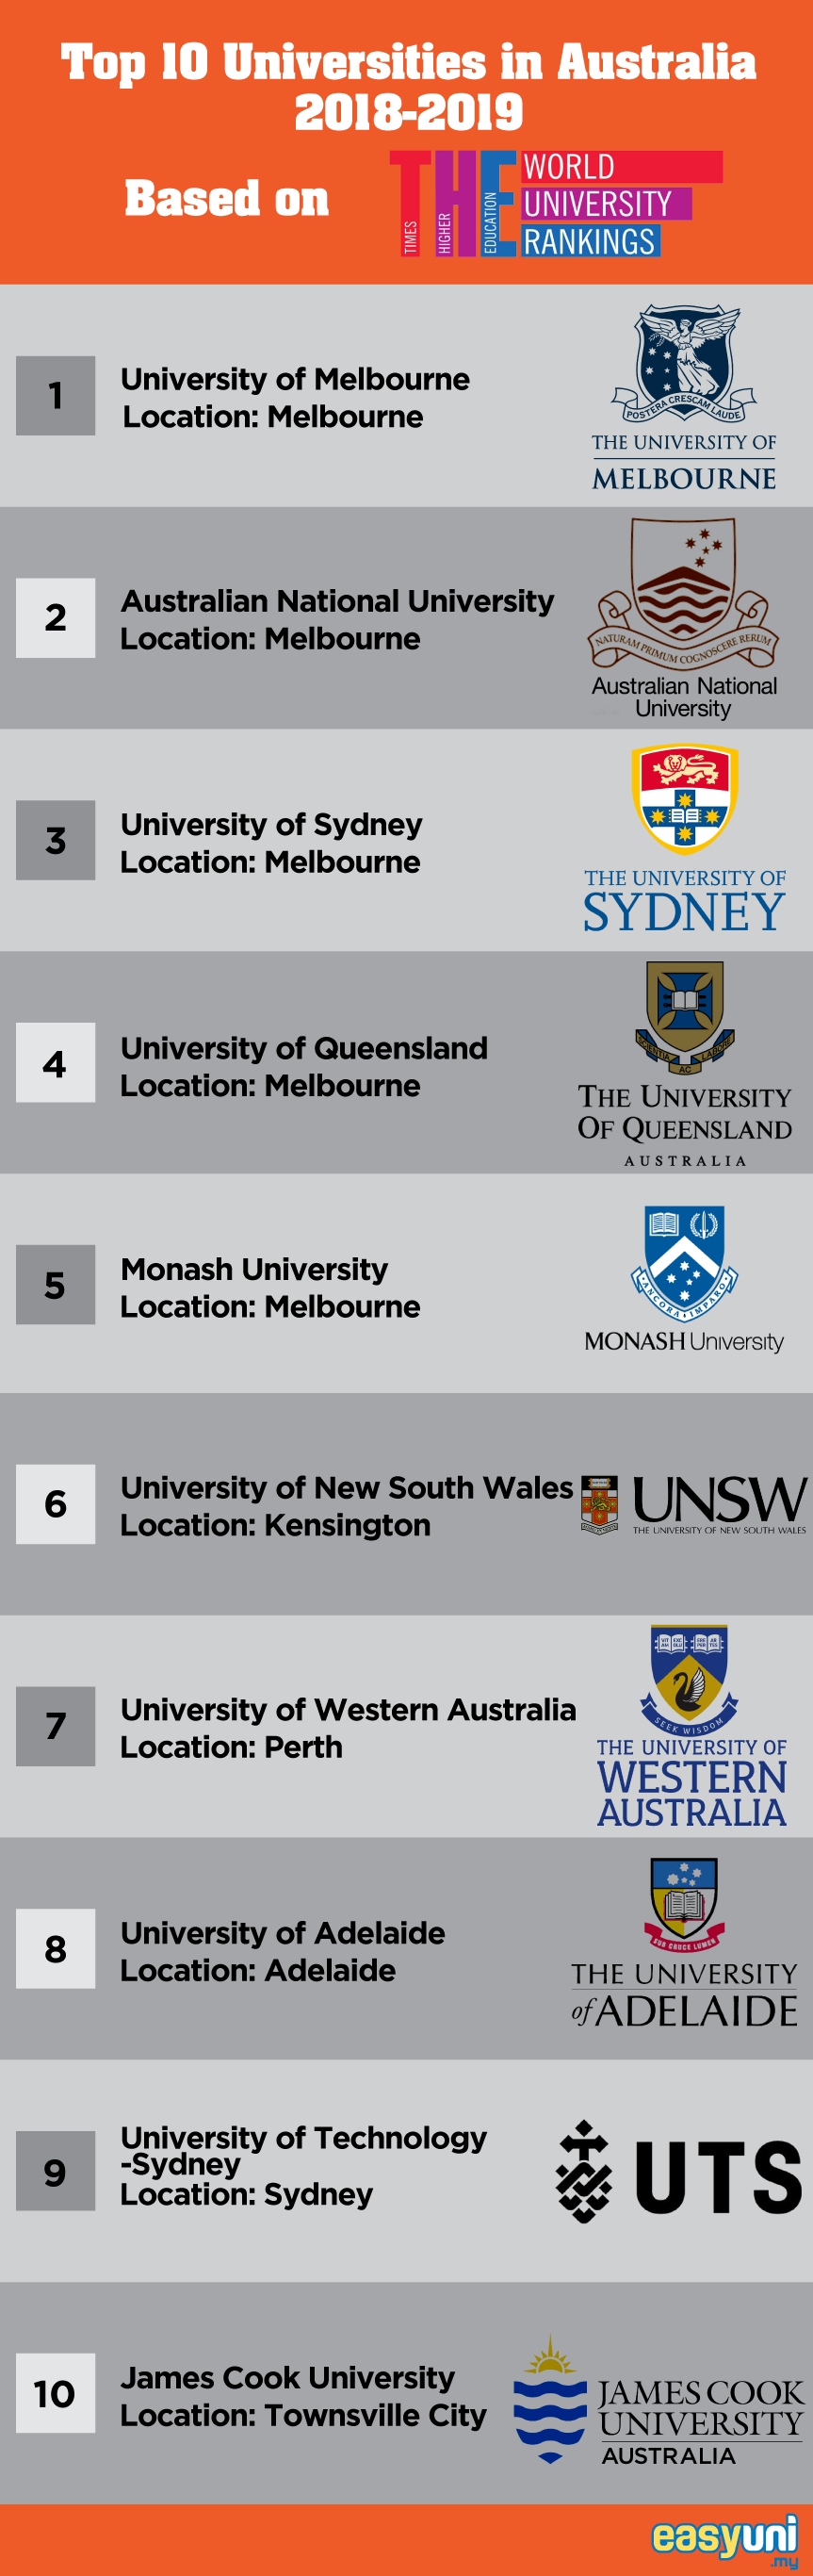 Top 10 Universities in Australia 2019